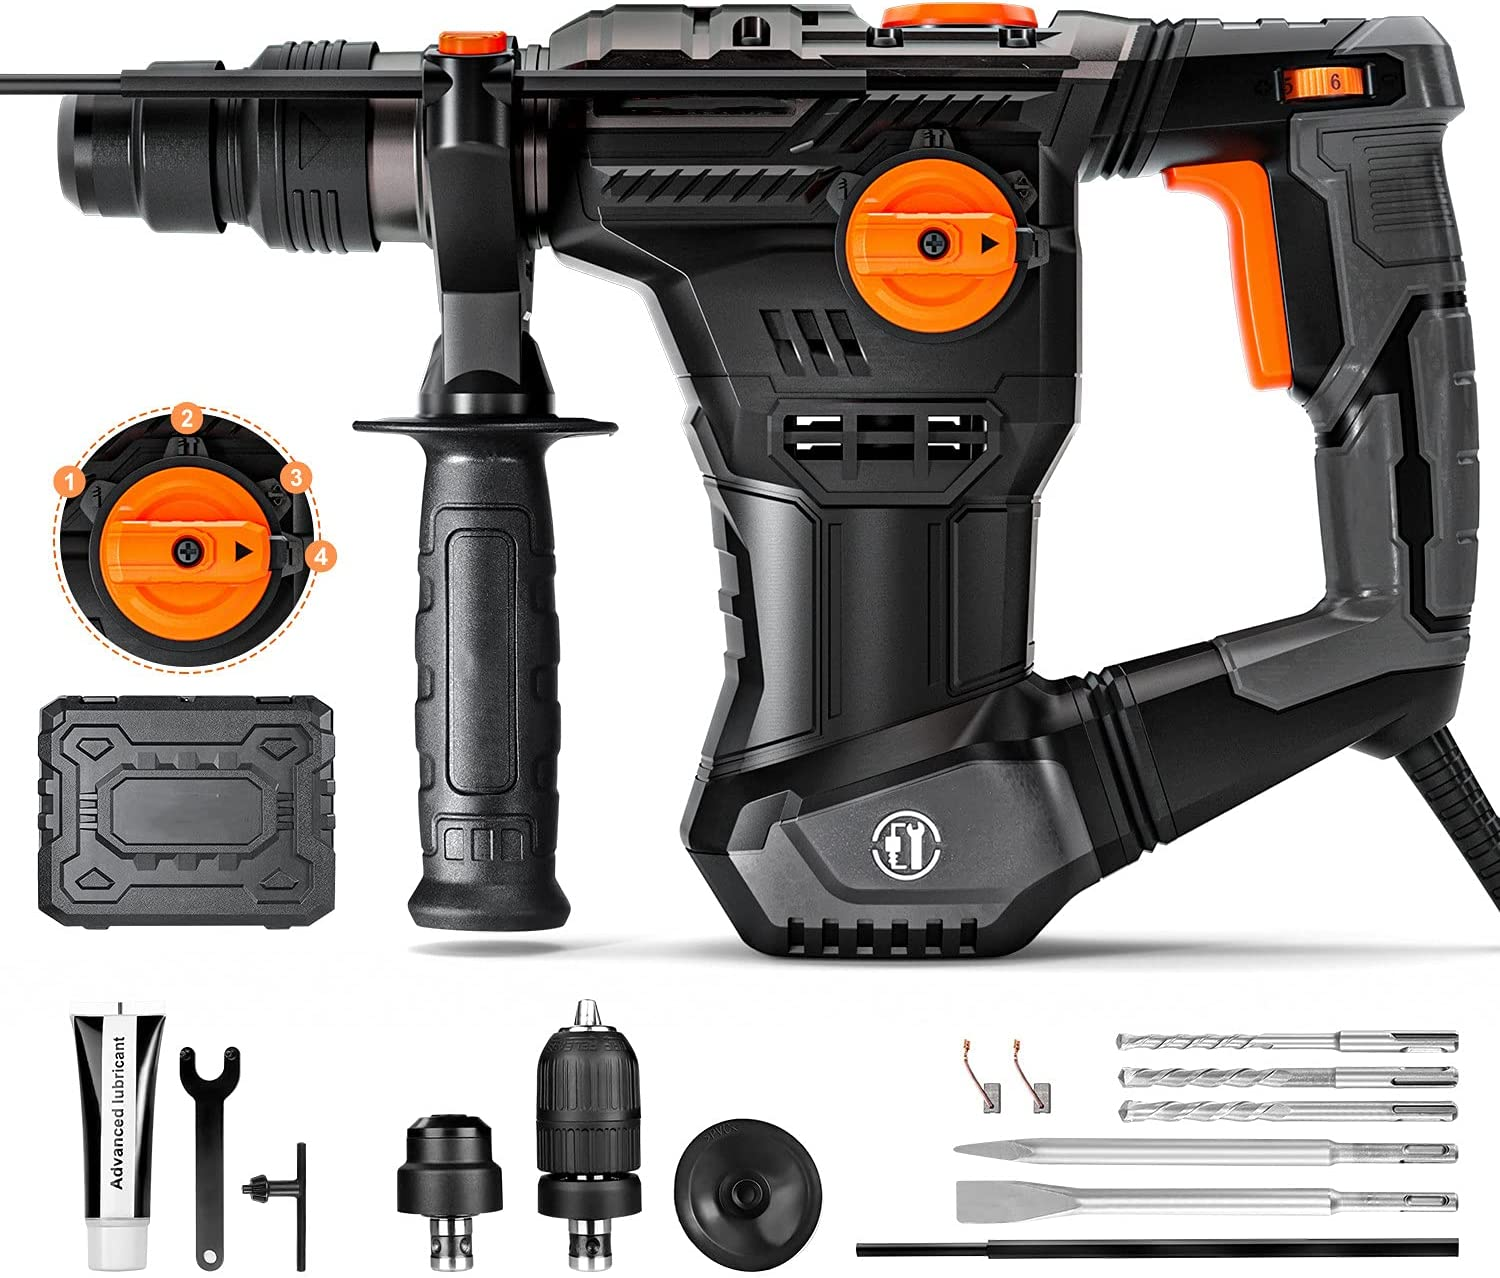 1256 TRH02A 9.5A 1'' Rotary Hammer Drill $59.99 Coupon